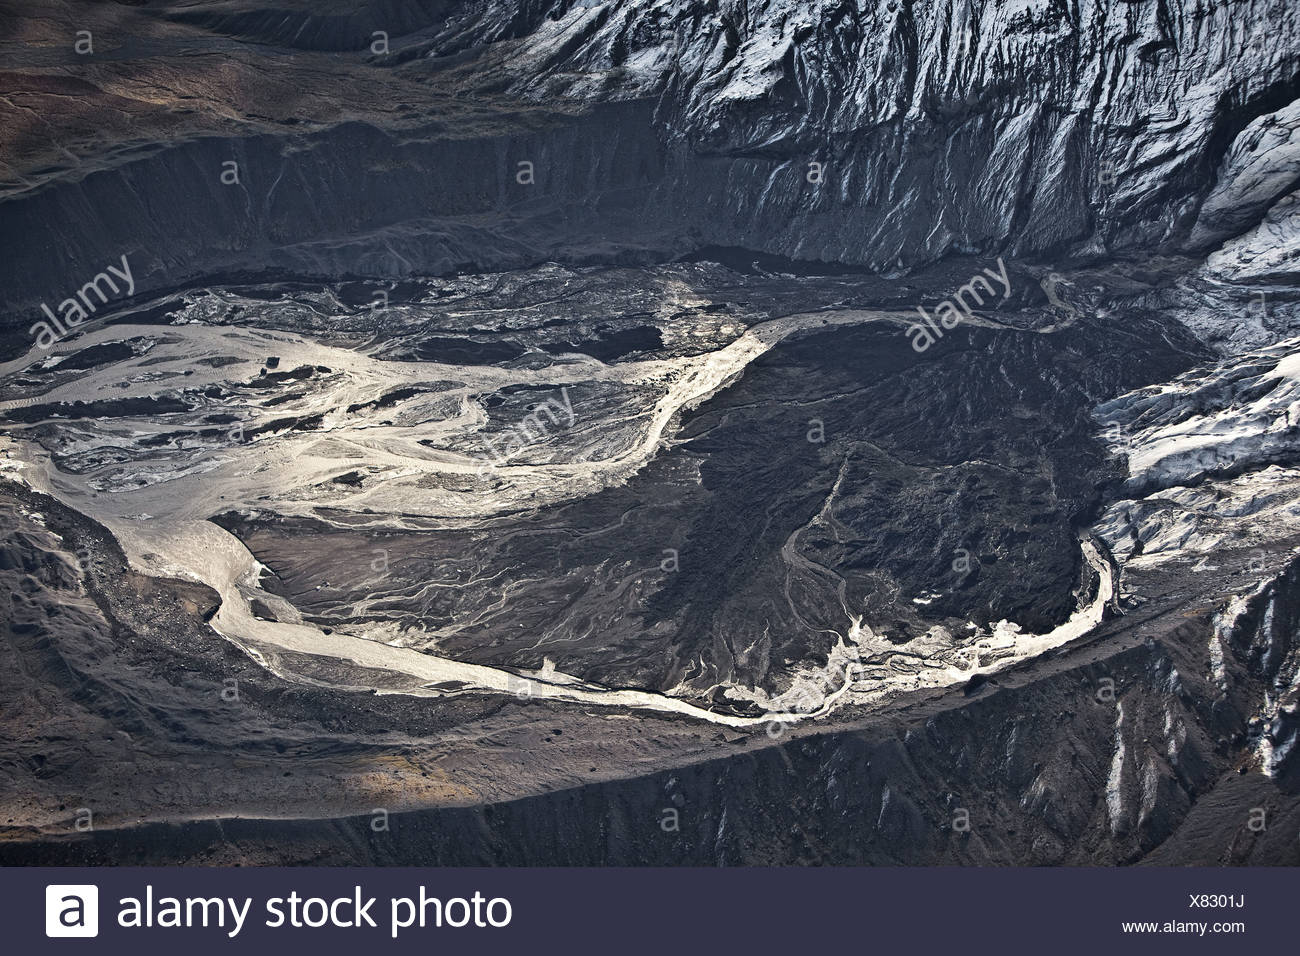 Gigjokull,-outlet glacier from Eyjafjallajokull.  Lagoon filled with mud and ash, Eyjafjallajokull Volcano Eruption, Iceland - Stock Image